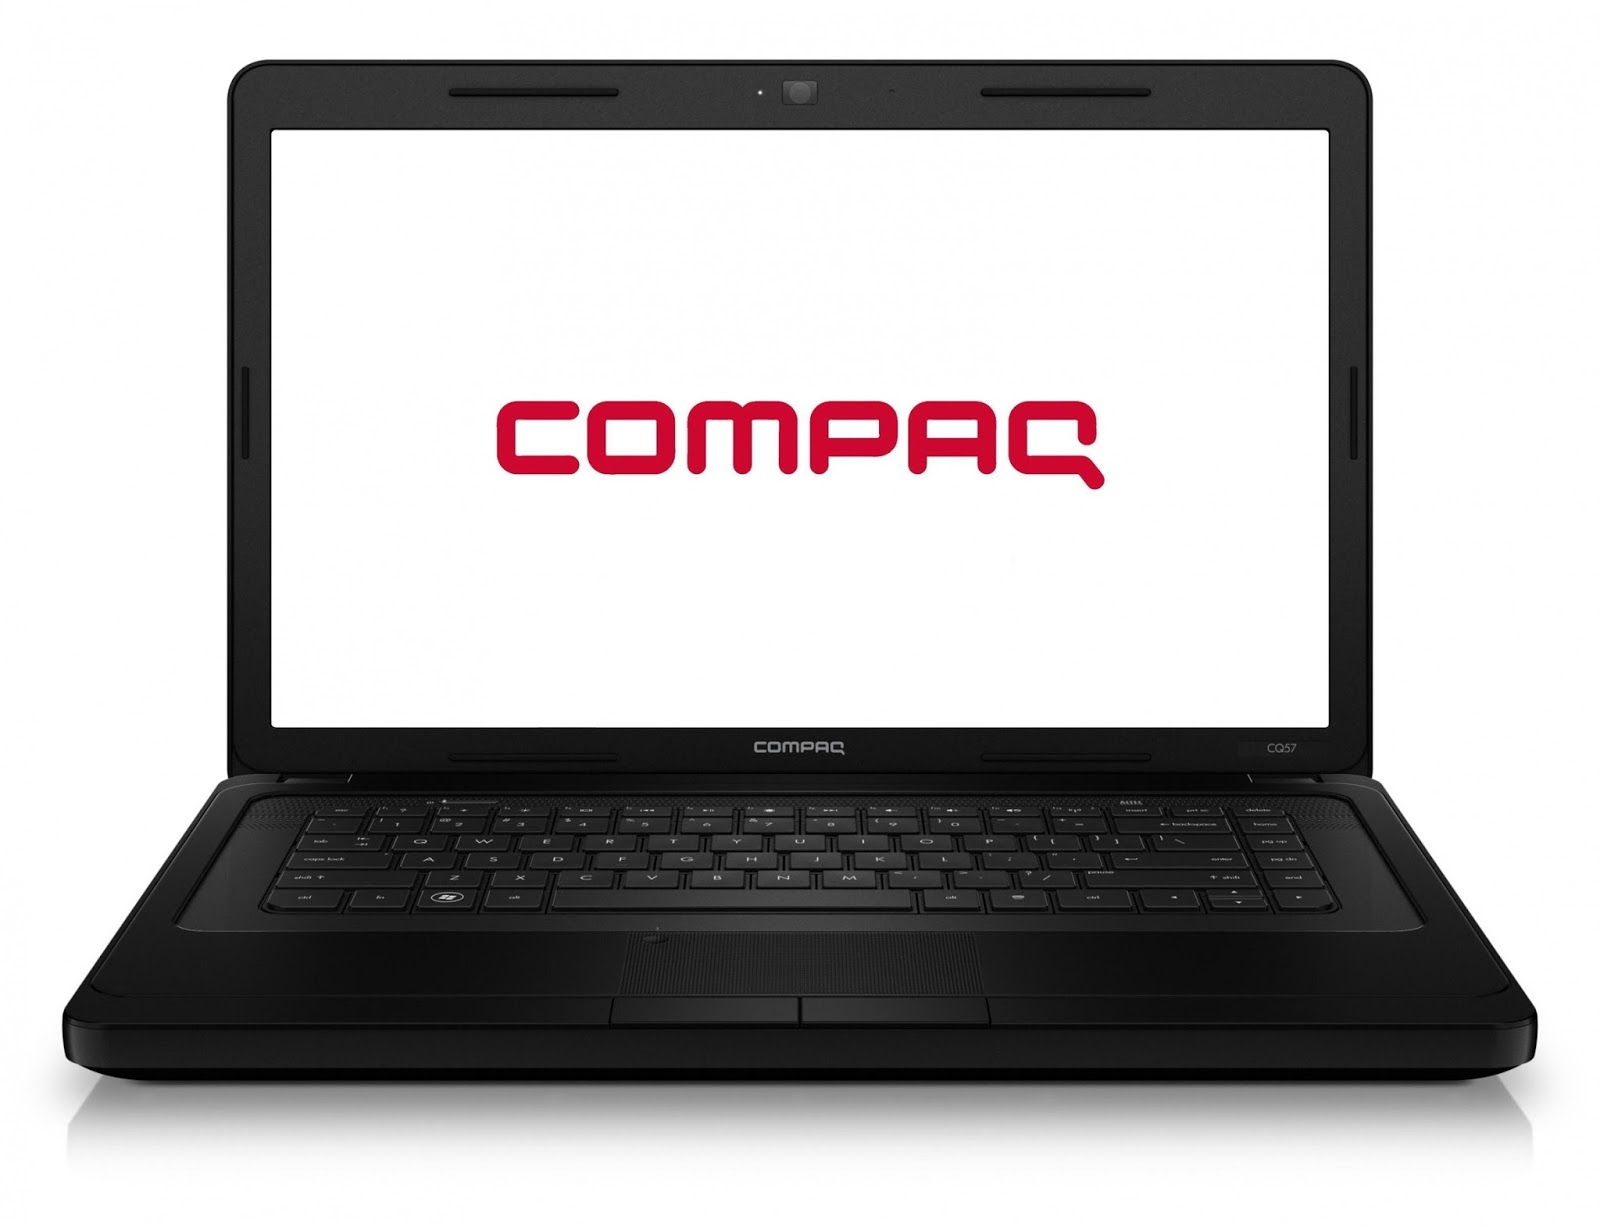 SOLVED Compaq presario CQ 57 does not recognize sd card - Fixya